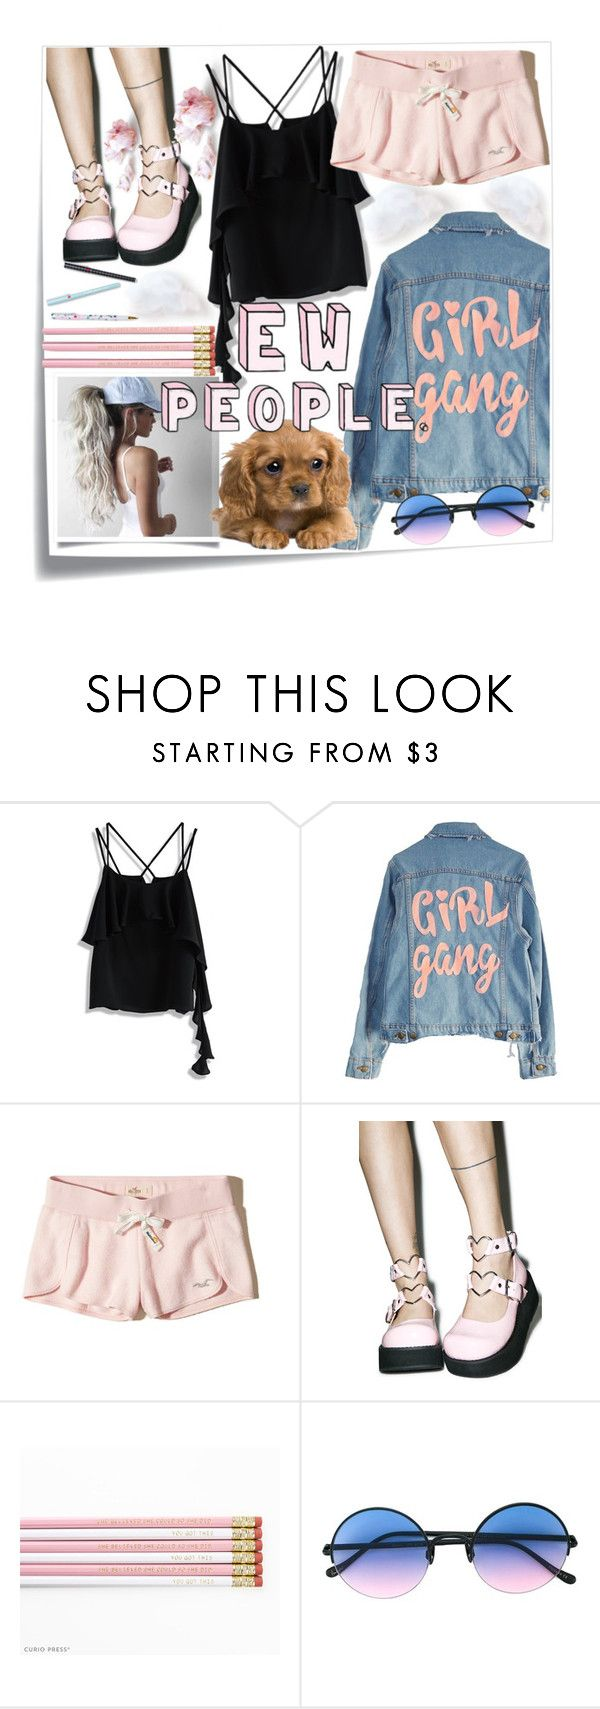 """""""#Girls gang"""" by navya-naveli ❤ liked on Polyvore featuring Post-It, Chicwish, High Heels Suicide, Hollister Co., Demonia and Sunday Somewhere"""